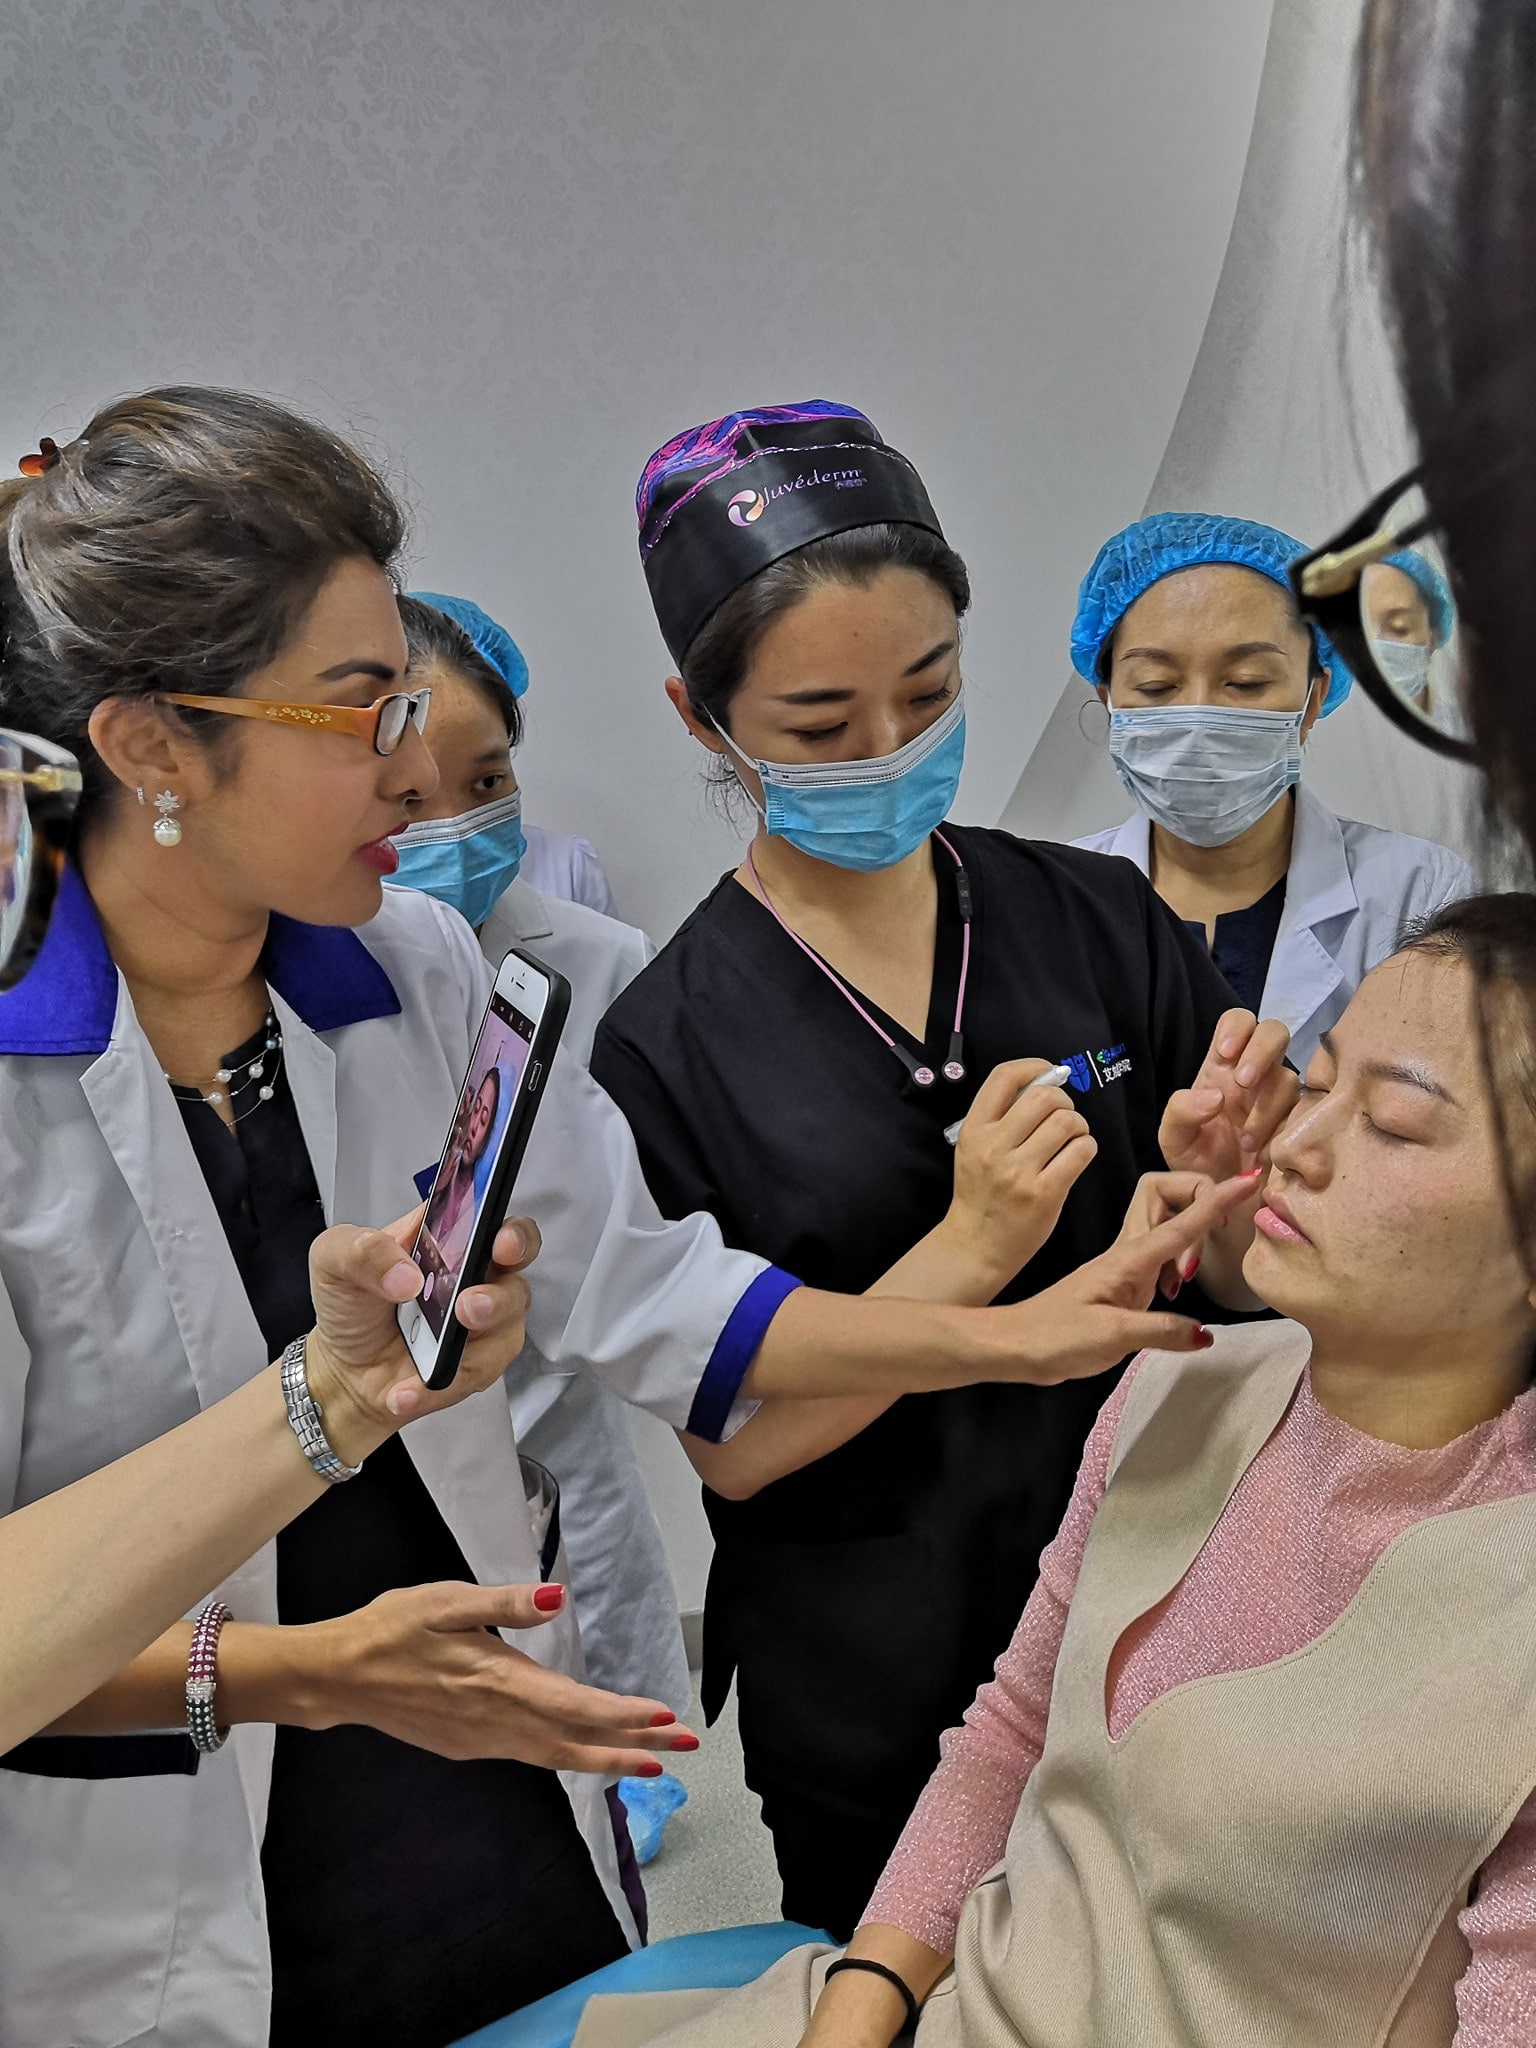 The Global Symposion of Injection Beauty - China Allergan Training Tour, 2018.